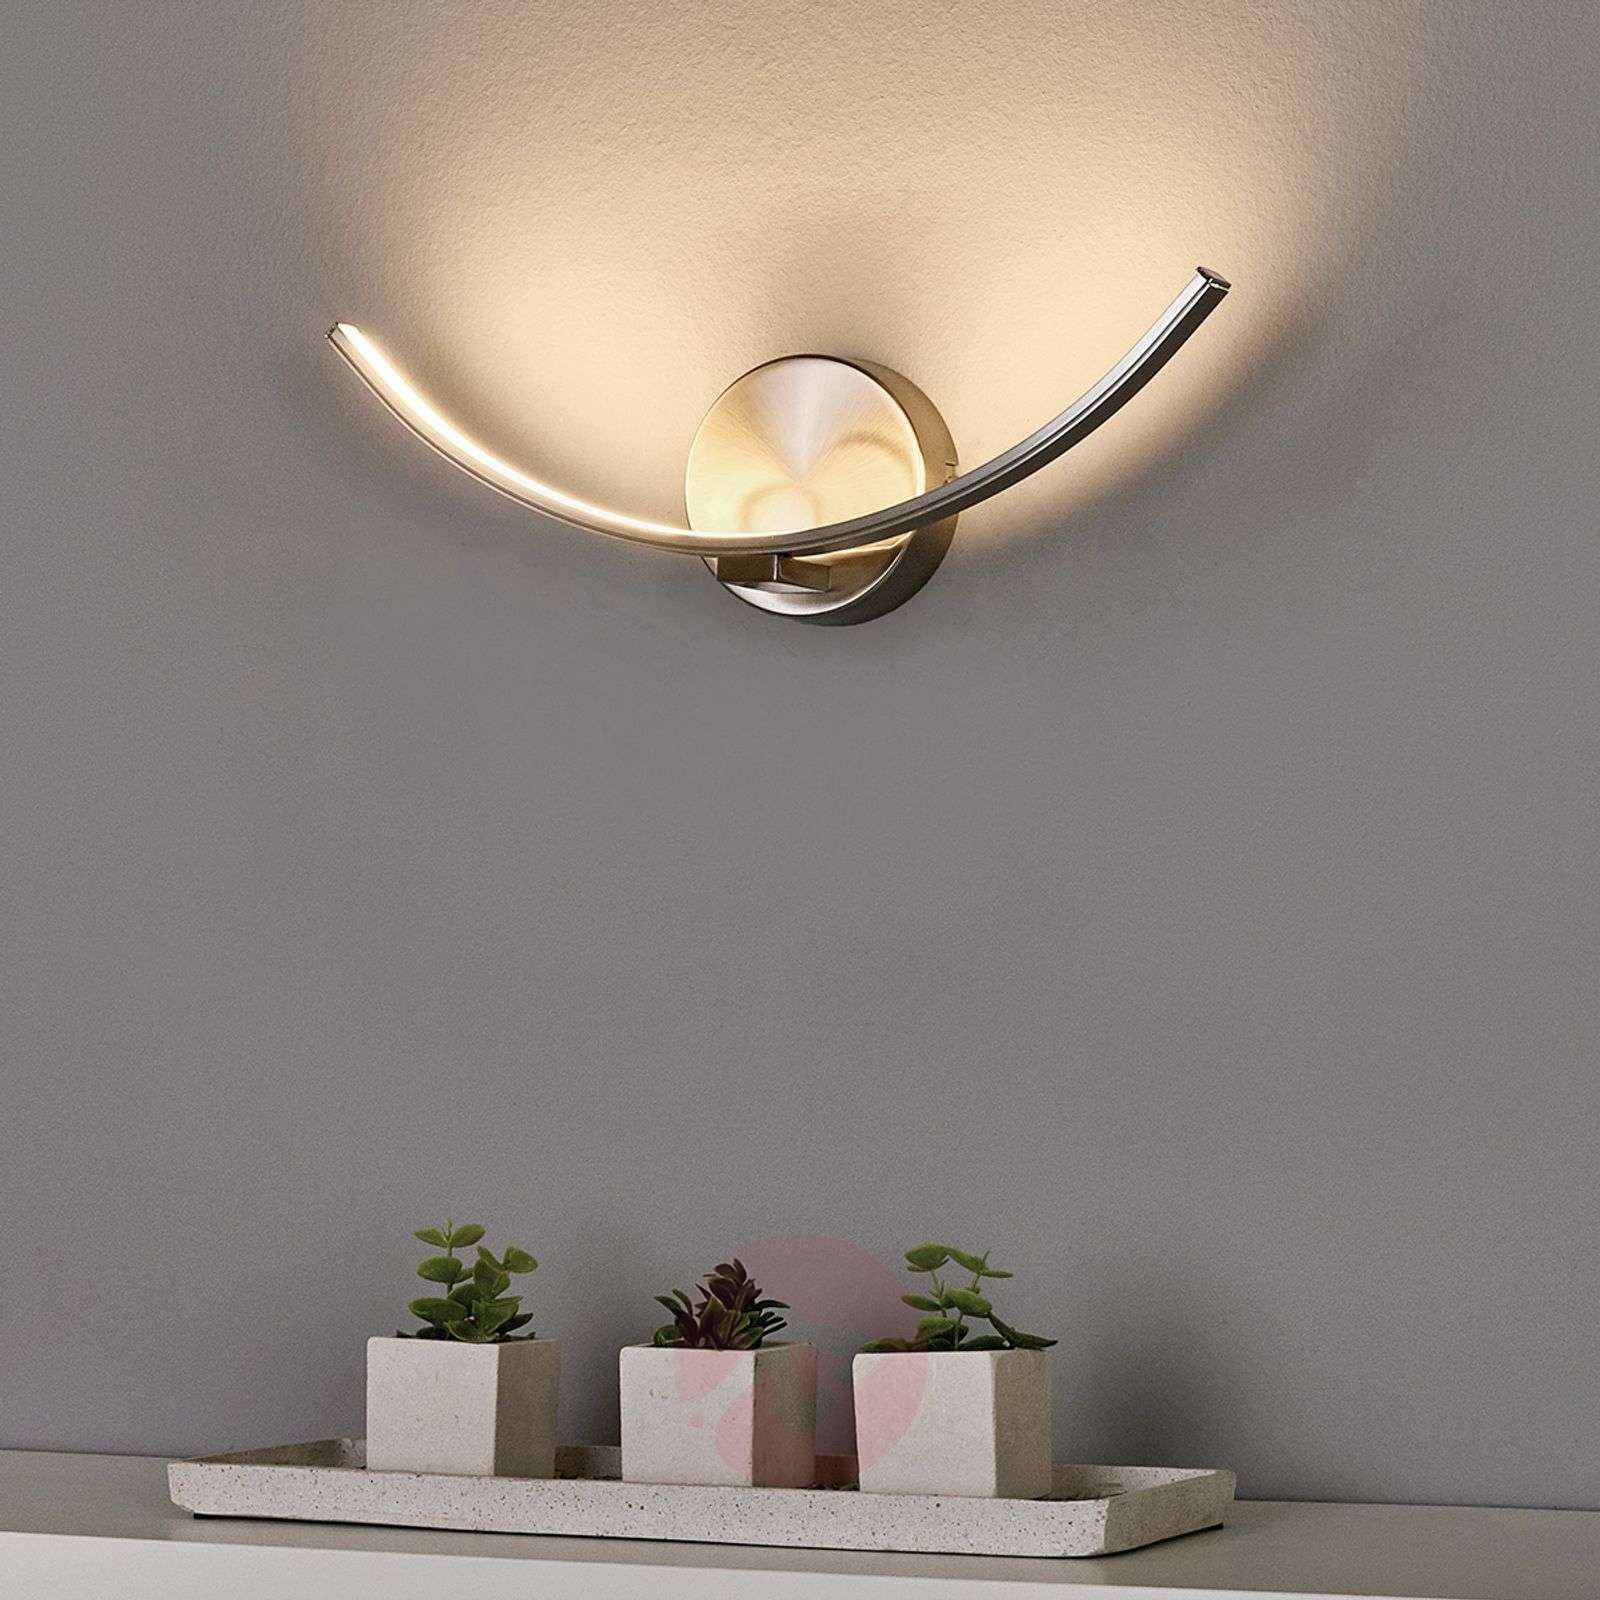 Curved led wall lamp iven lights curved led wall lamp iven 9985051 02 mozeypictures Gallery